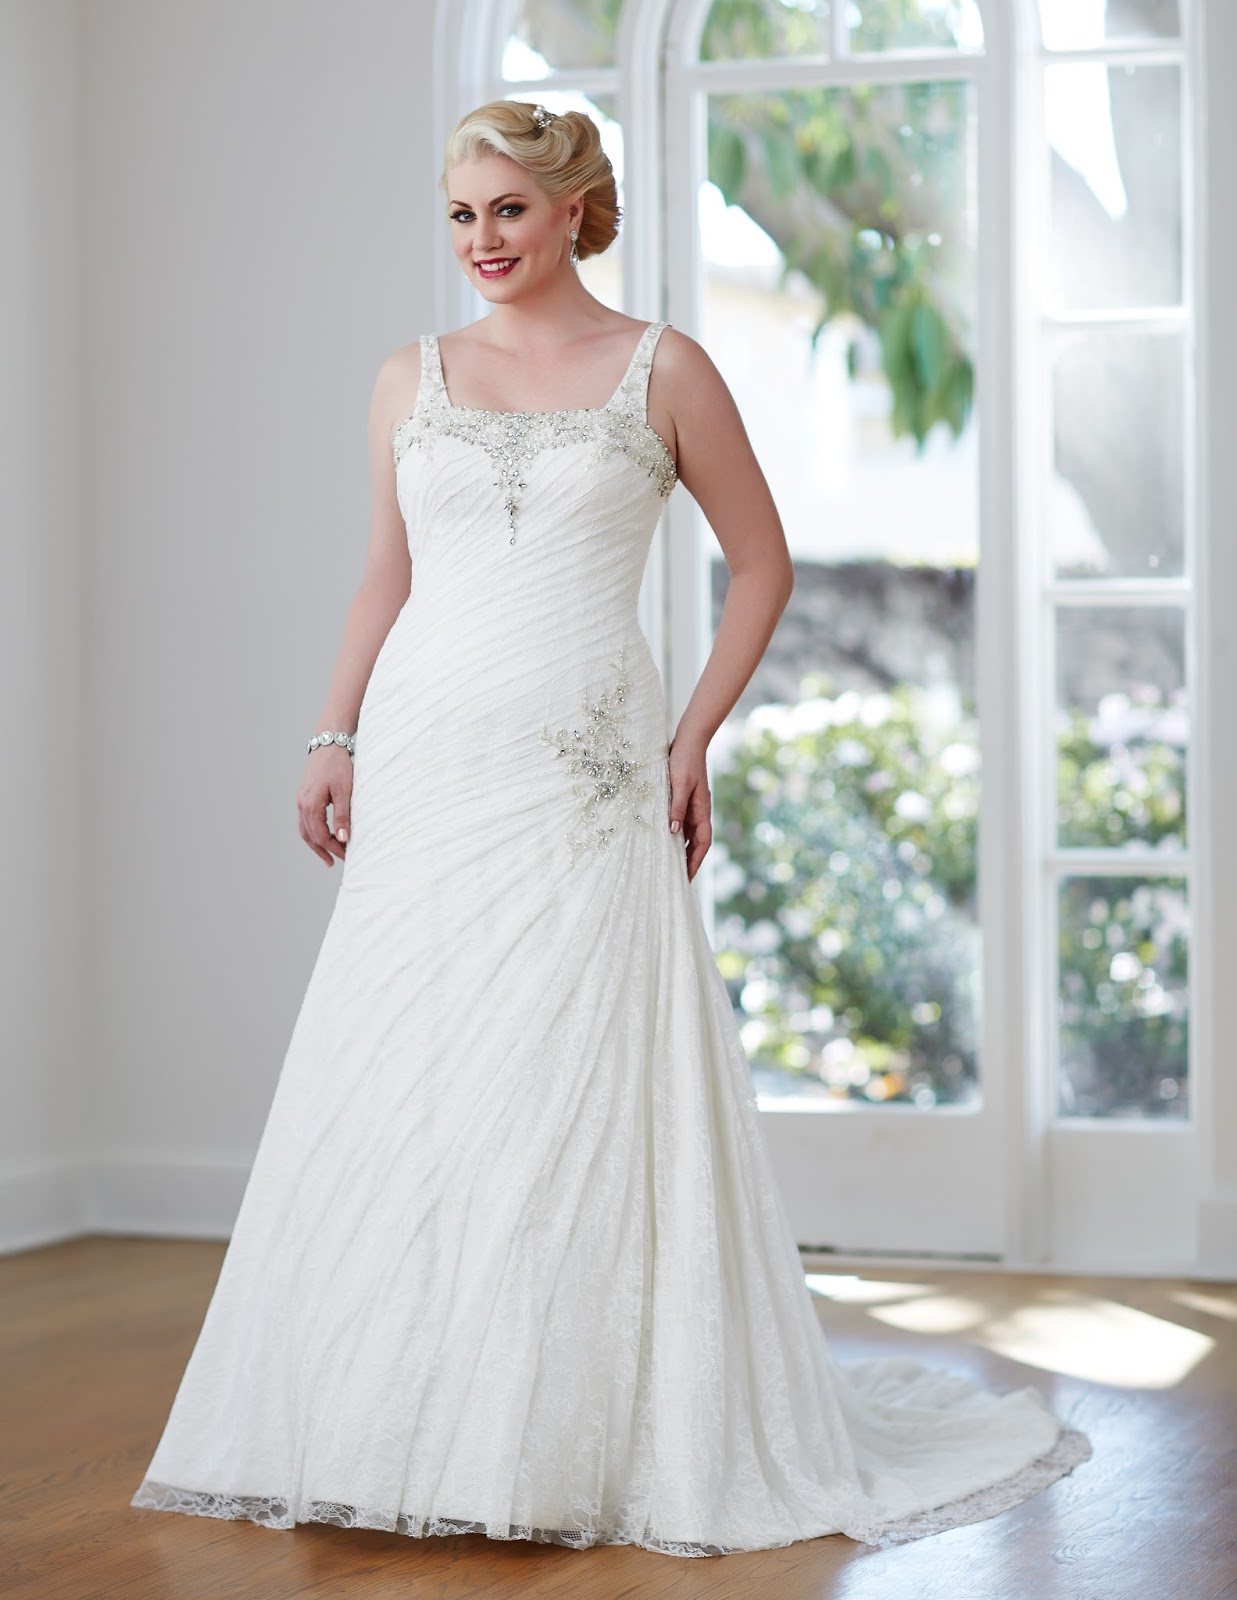 wedding dresses for older brides second weddings, wedding dresses for older brides (2nd marriage), short wedding dresses for older brides, informal wedding dresses for older brides, wedding dresses for older brides with sleeves, casual wedding dresses for older brides, beach wedding dresses for older brides